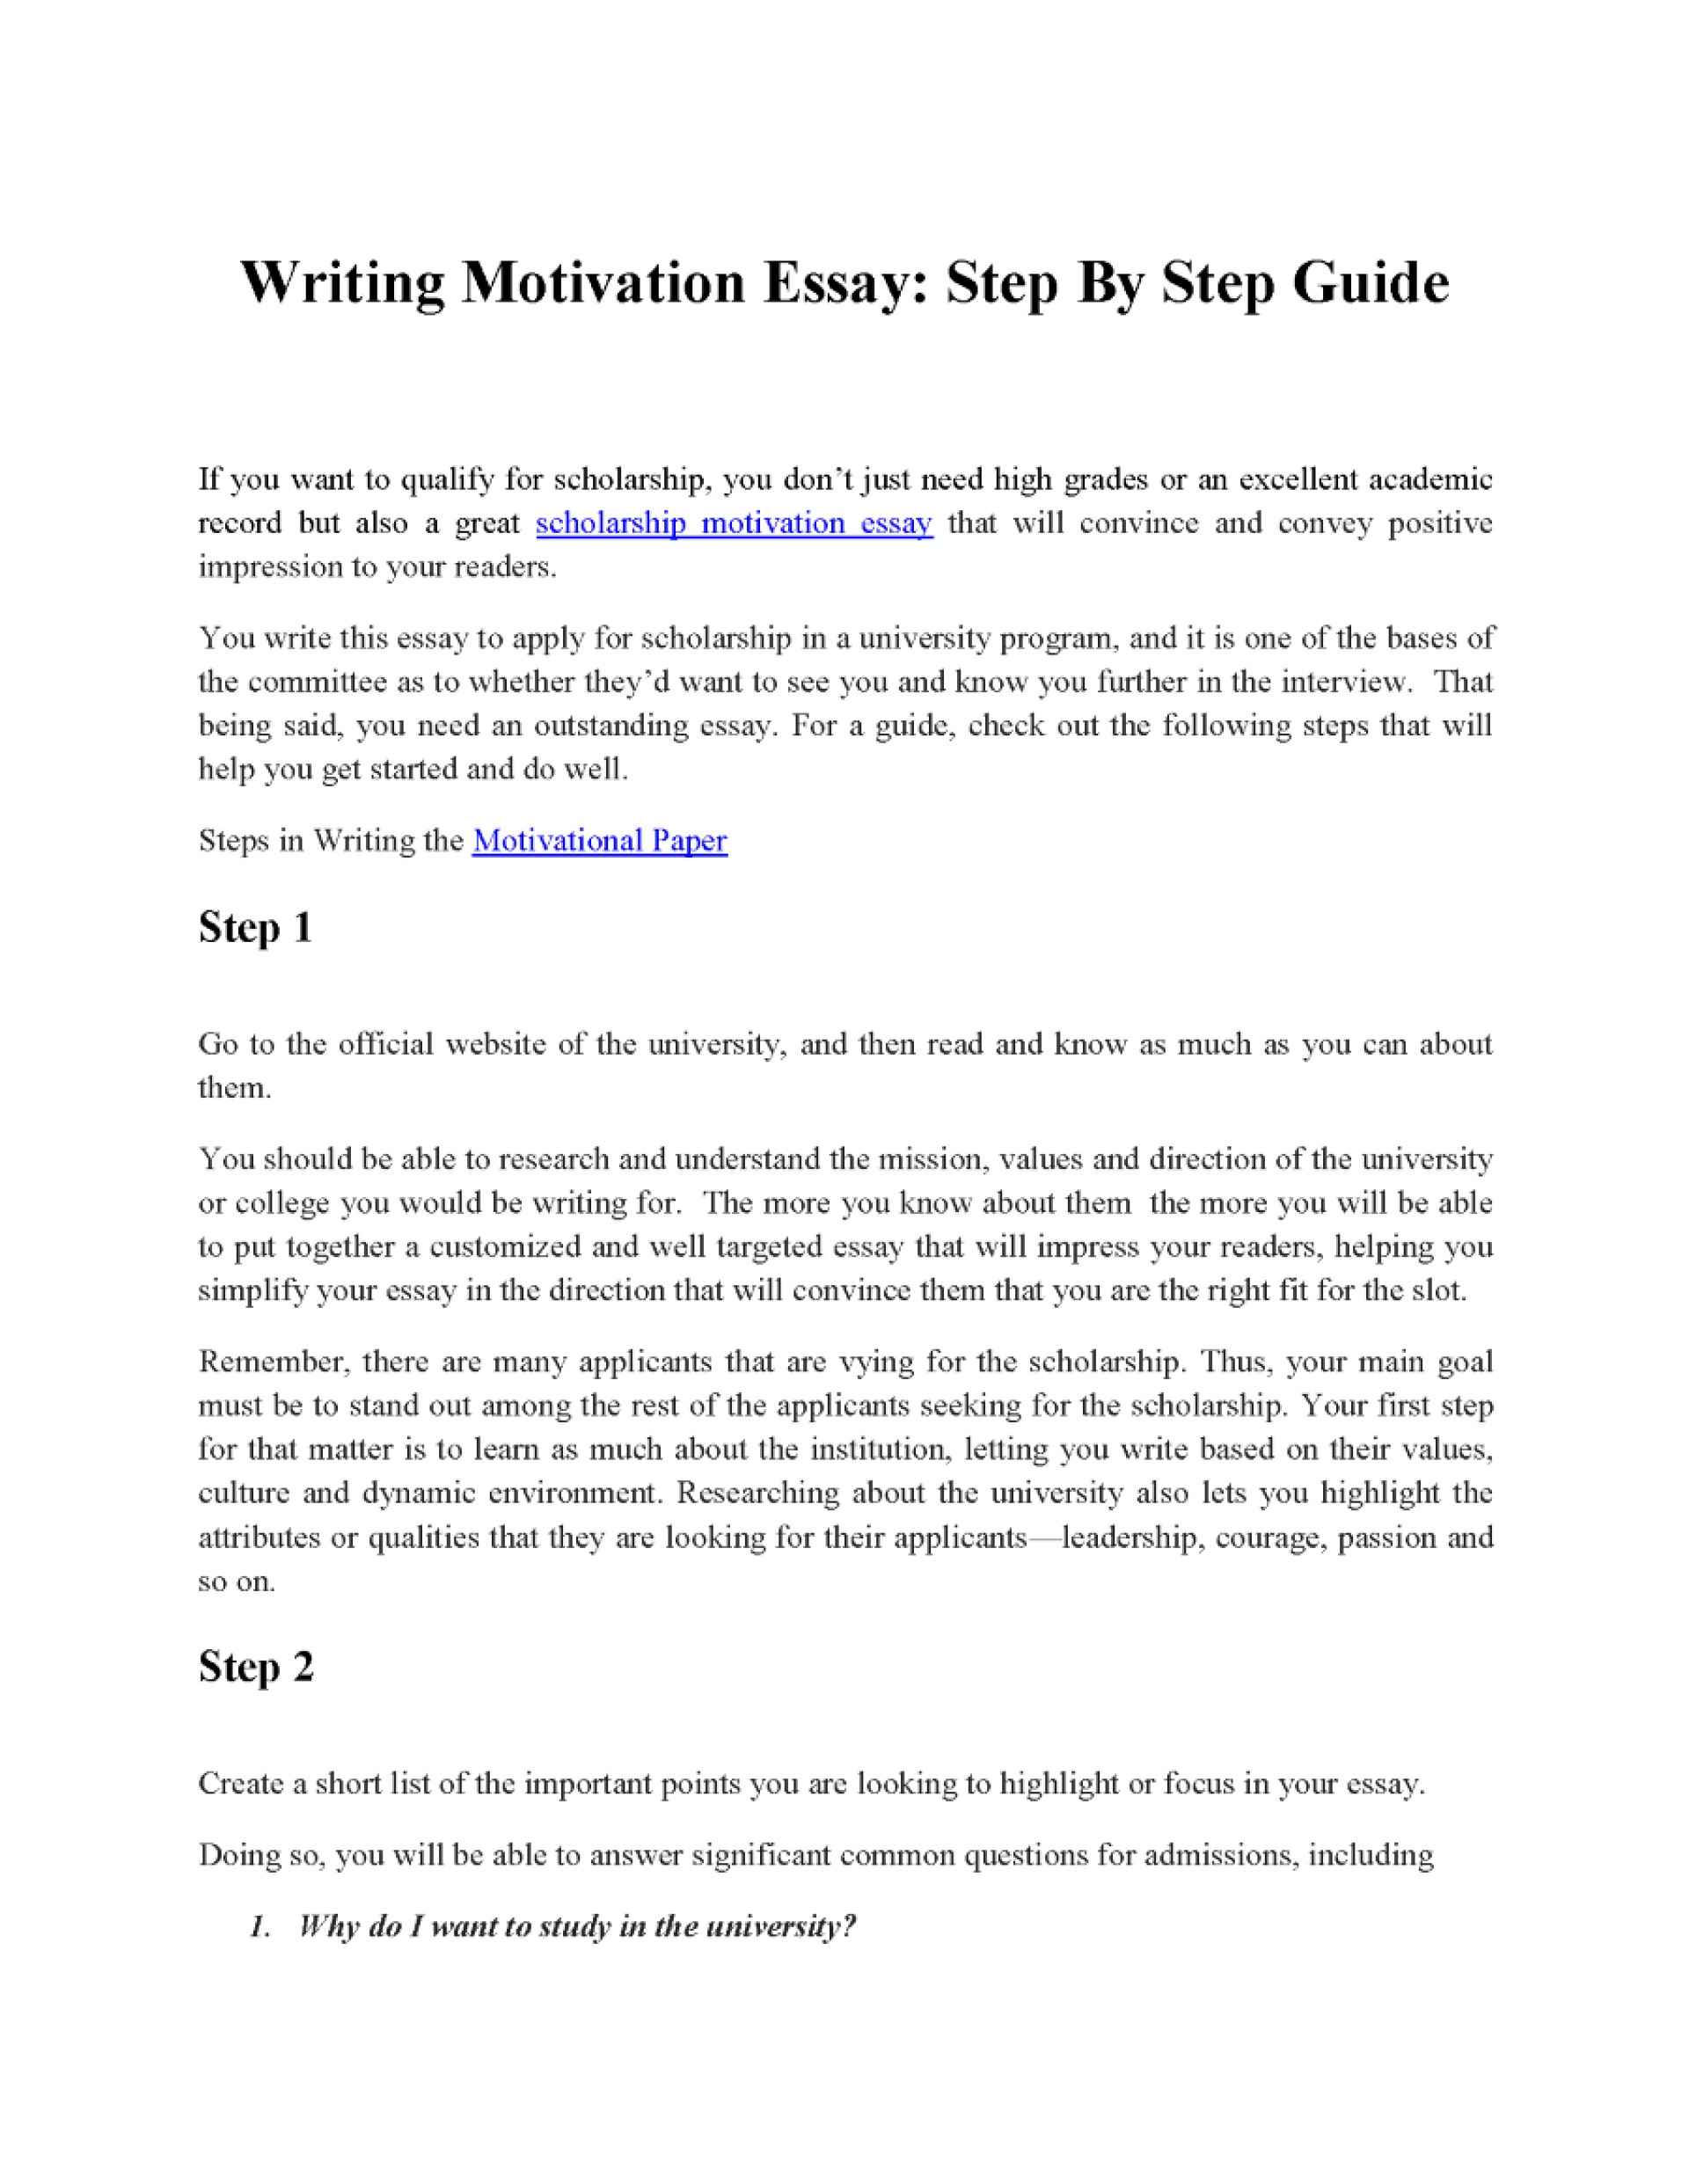 024 2948595 636128784141107500 Slide1 Fs Steps Writing Research Best 10 Paper In The Markman Pdf To A Page 1920